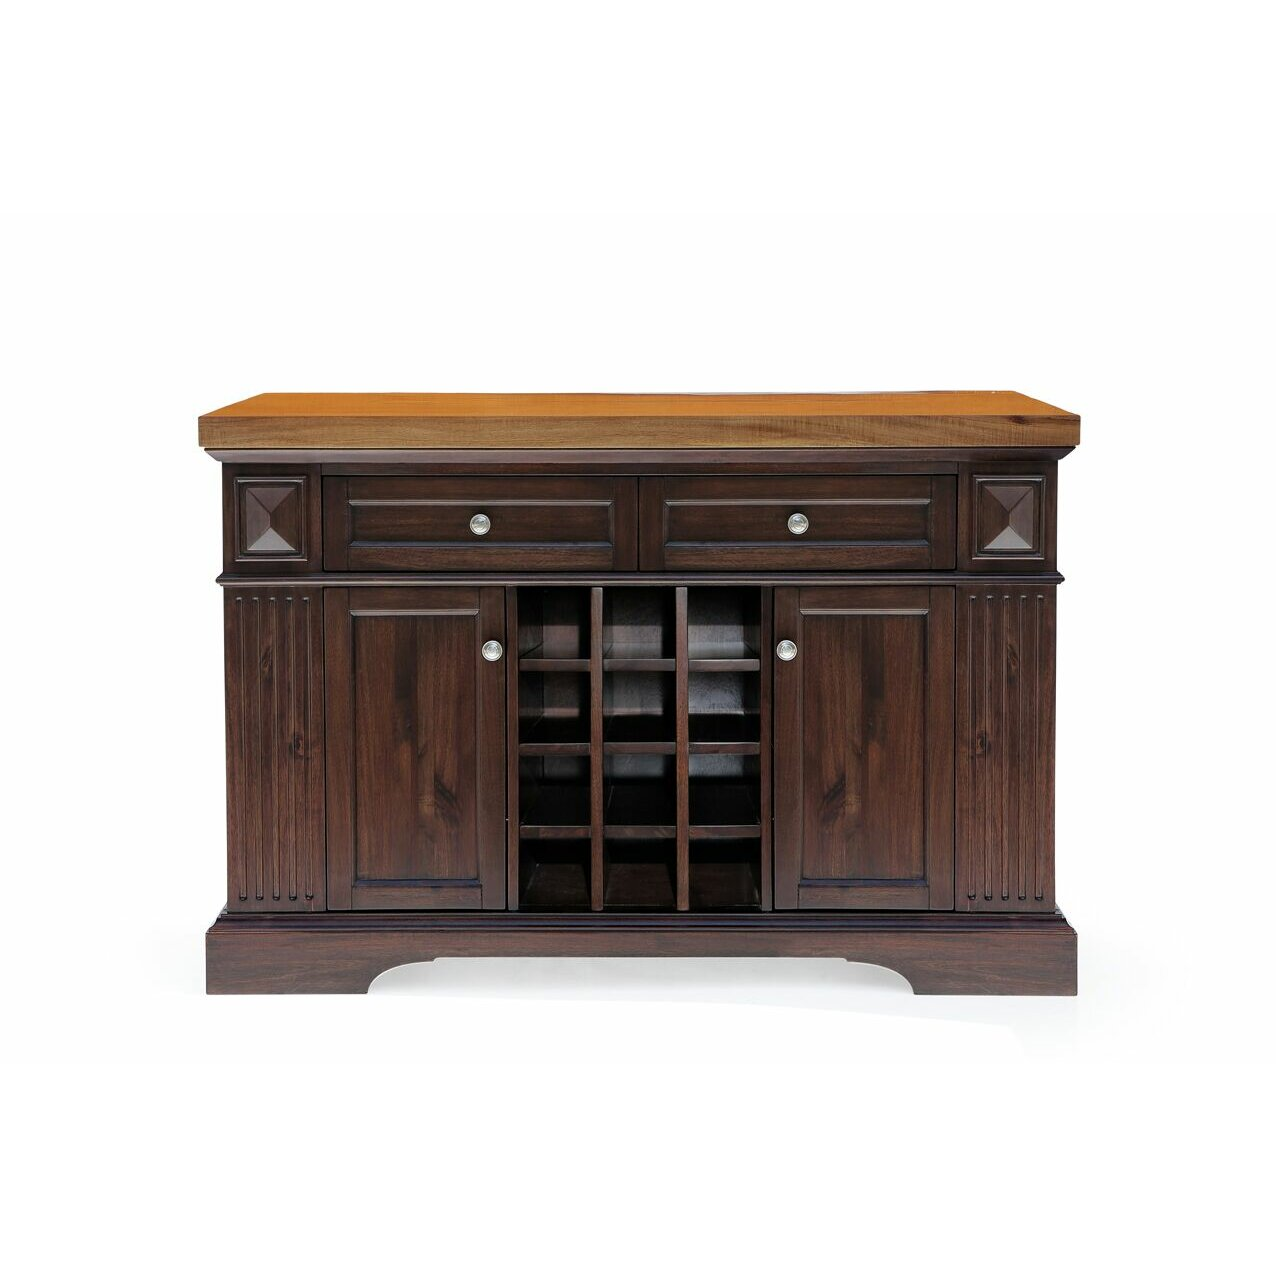 222 Fifth Furniture Greenwich Kitchen Island With Wood Top Wayfair